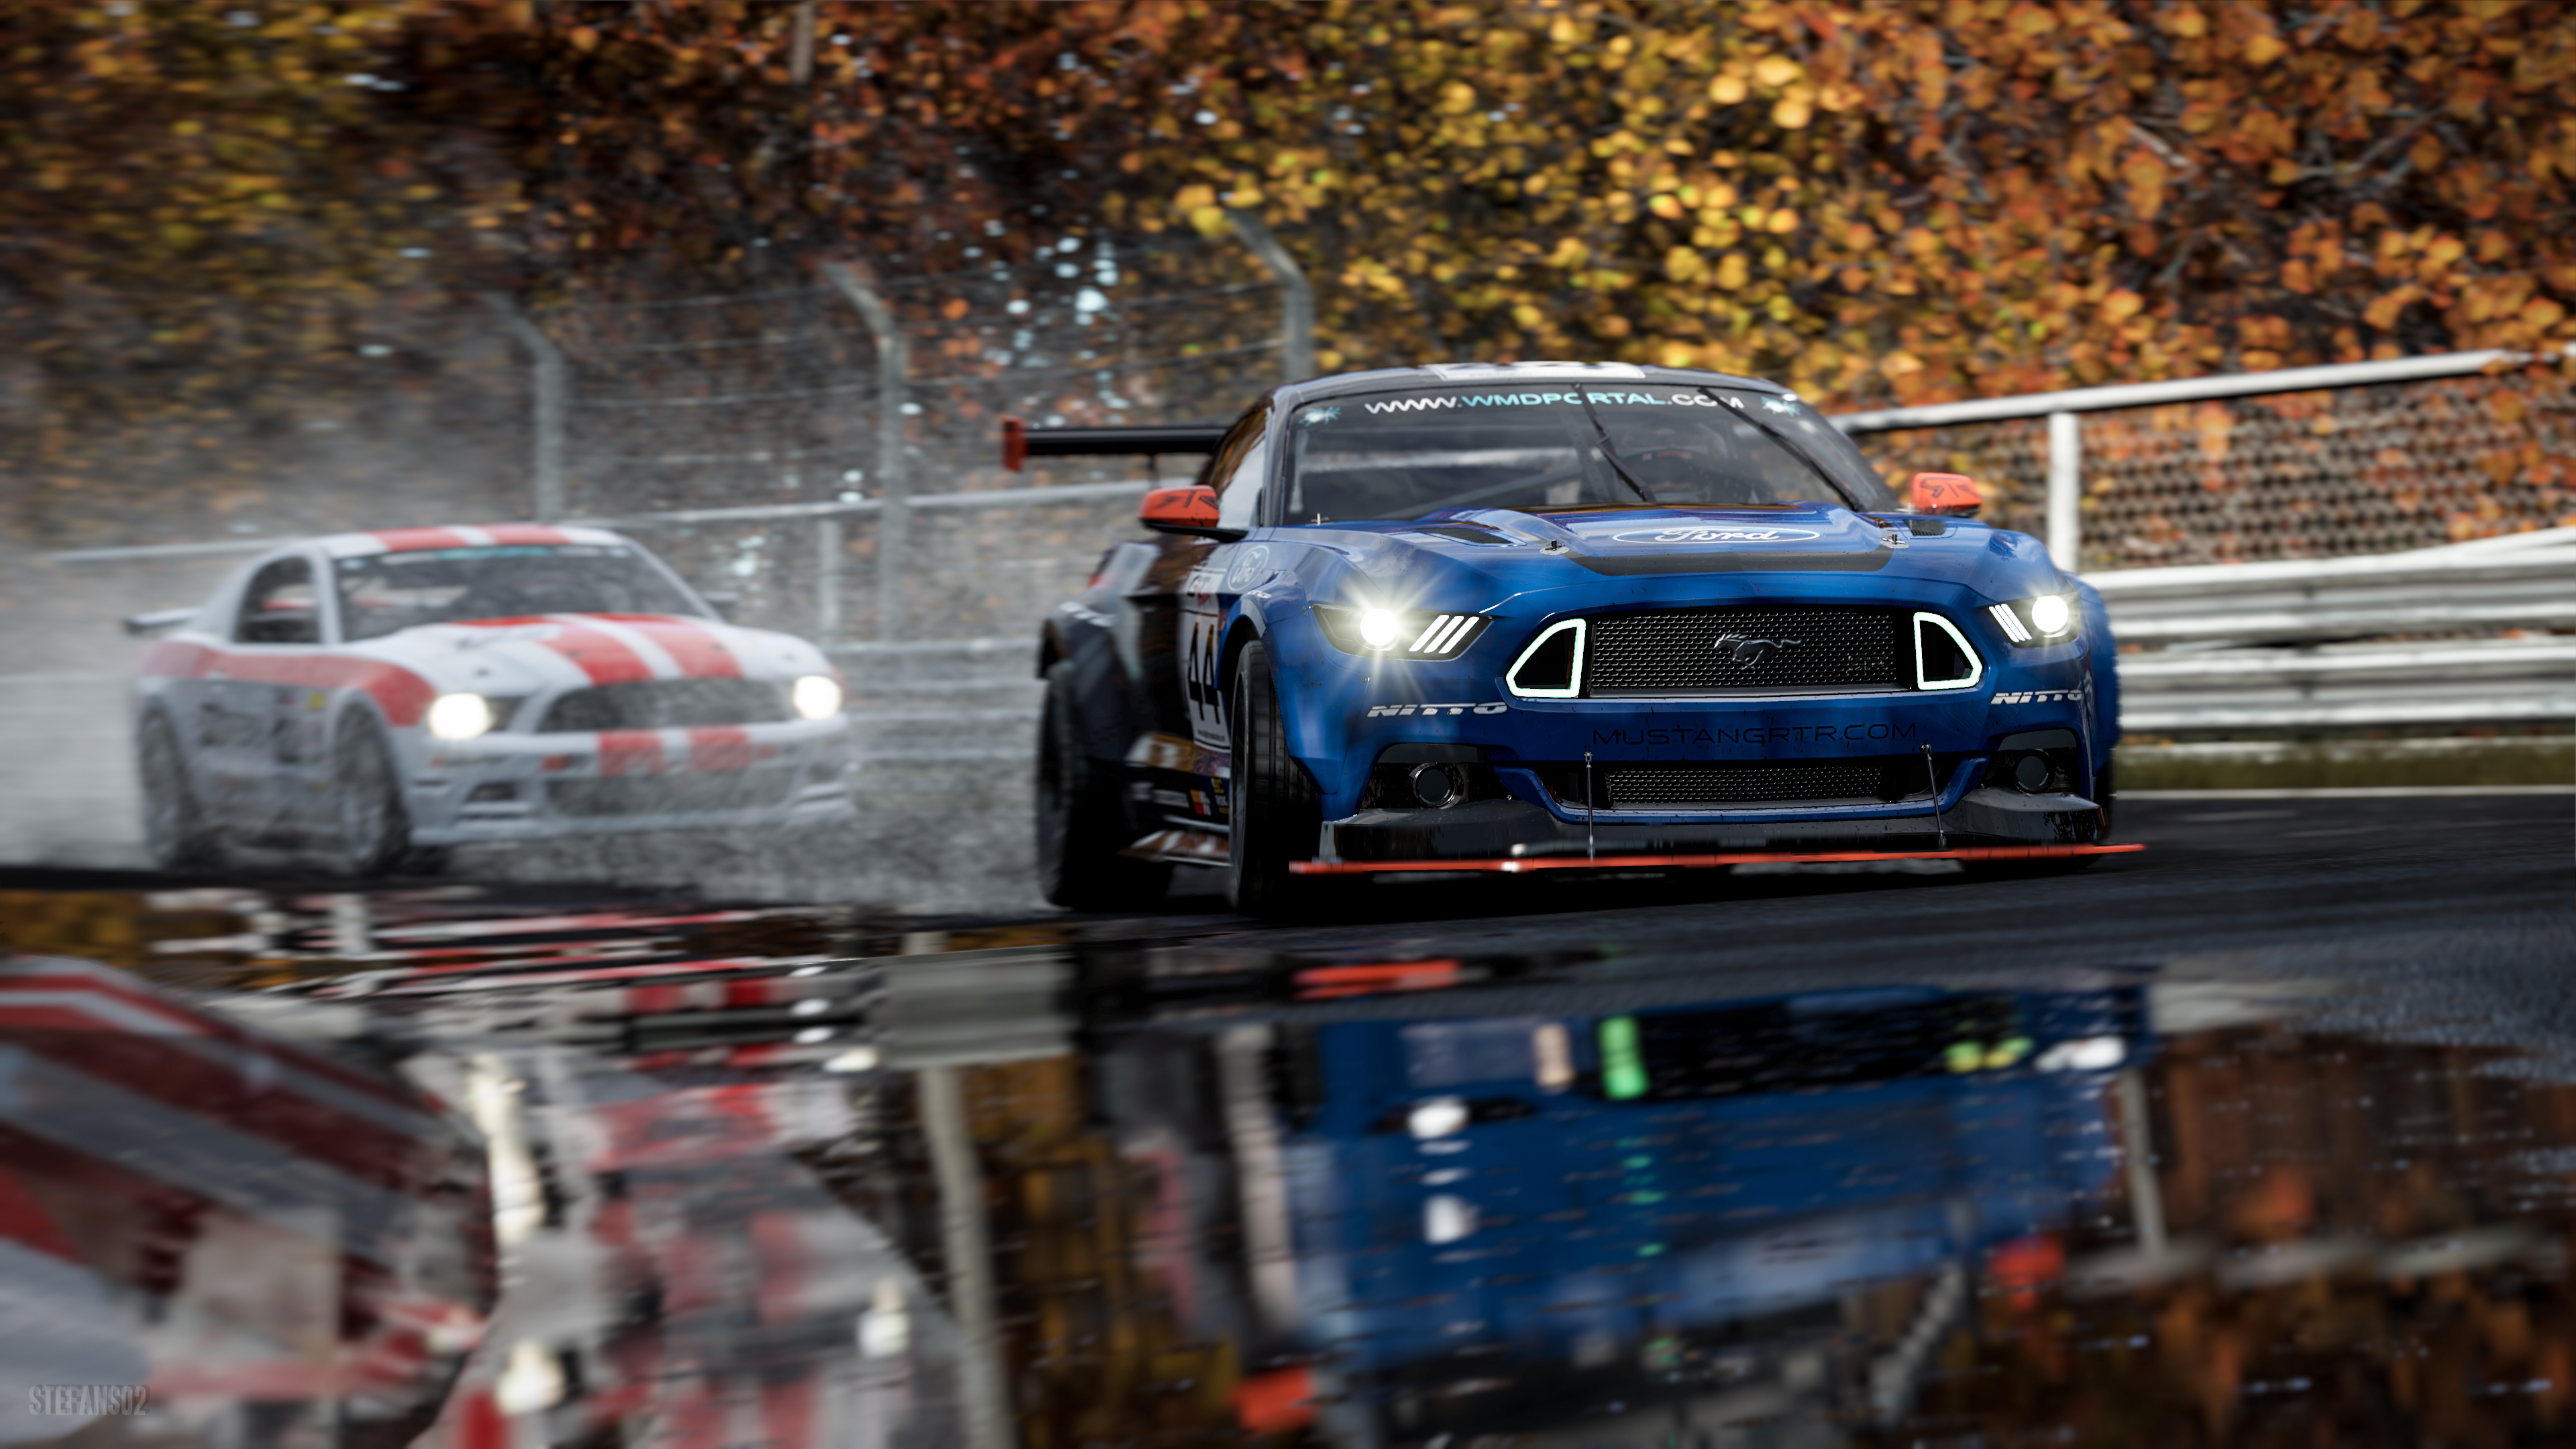 ford mustang rtr project cars 2 4k 1547937038 - Ford Mustang RTR Project Cars 2 4k - project cars 2 wallpapers, hd-wallpapers, games wallpapers, ford wallpapers, ford mustang wallpapers, cars wallpapers, 4k-wallpapers, 2018 games wallpapers